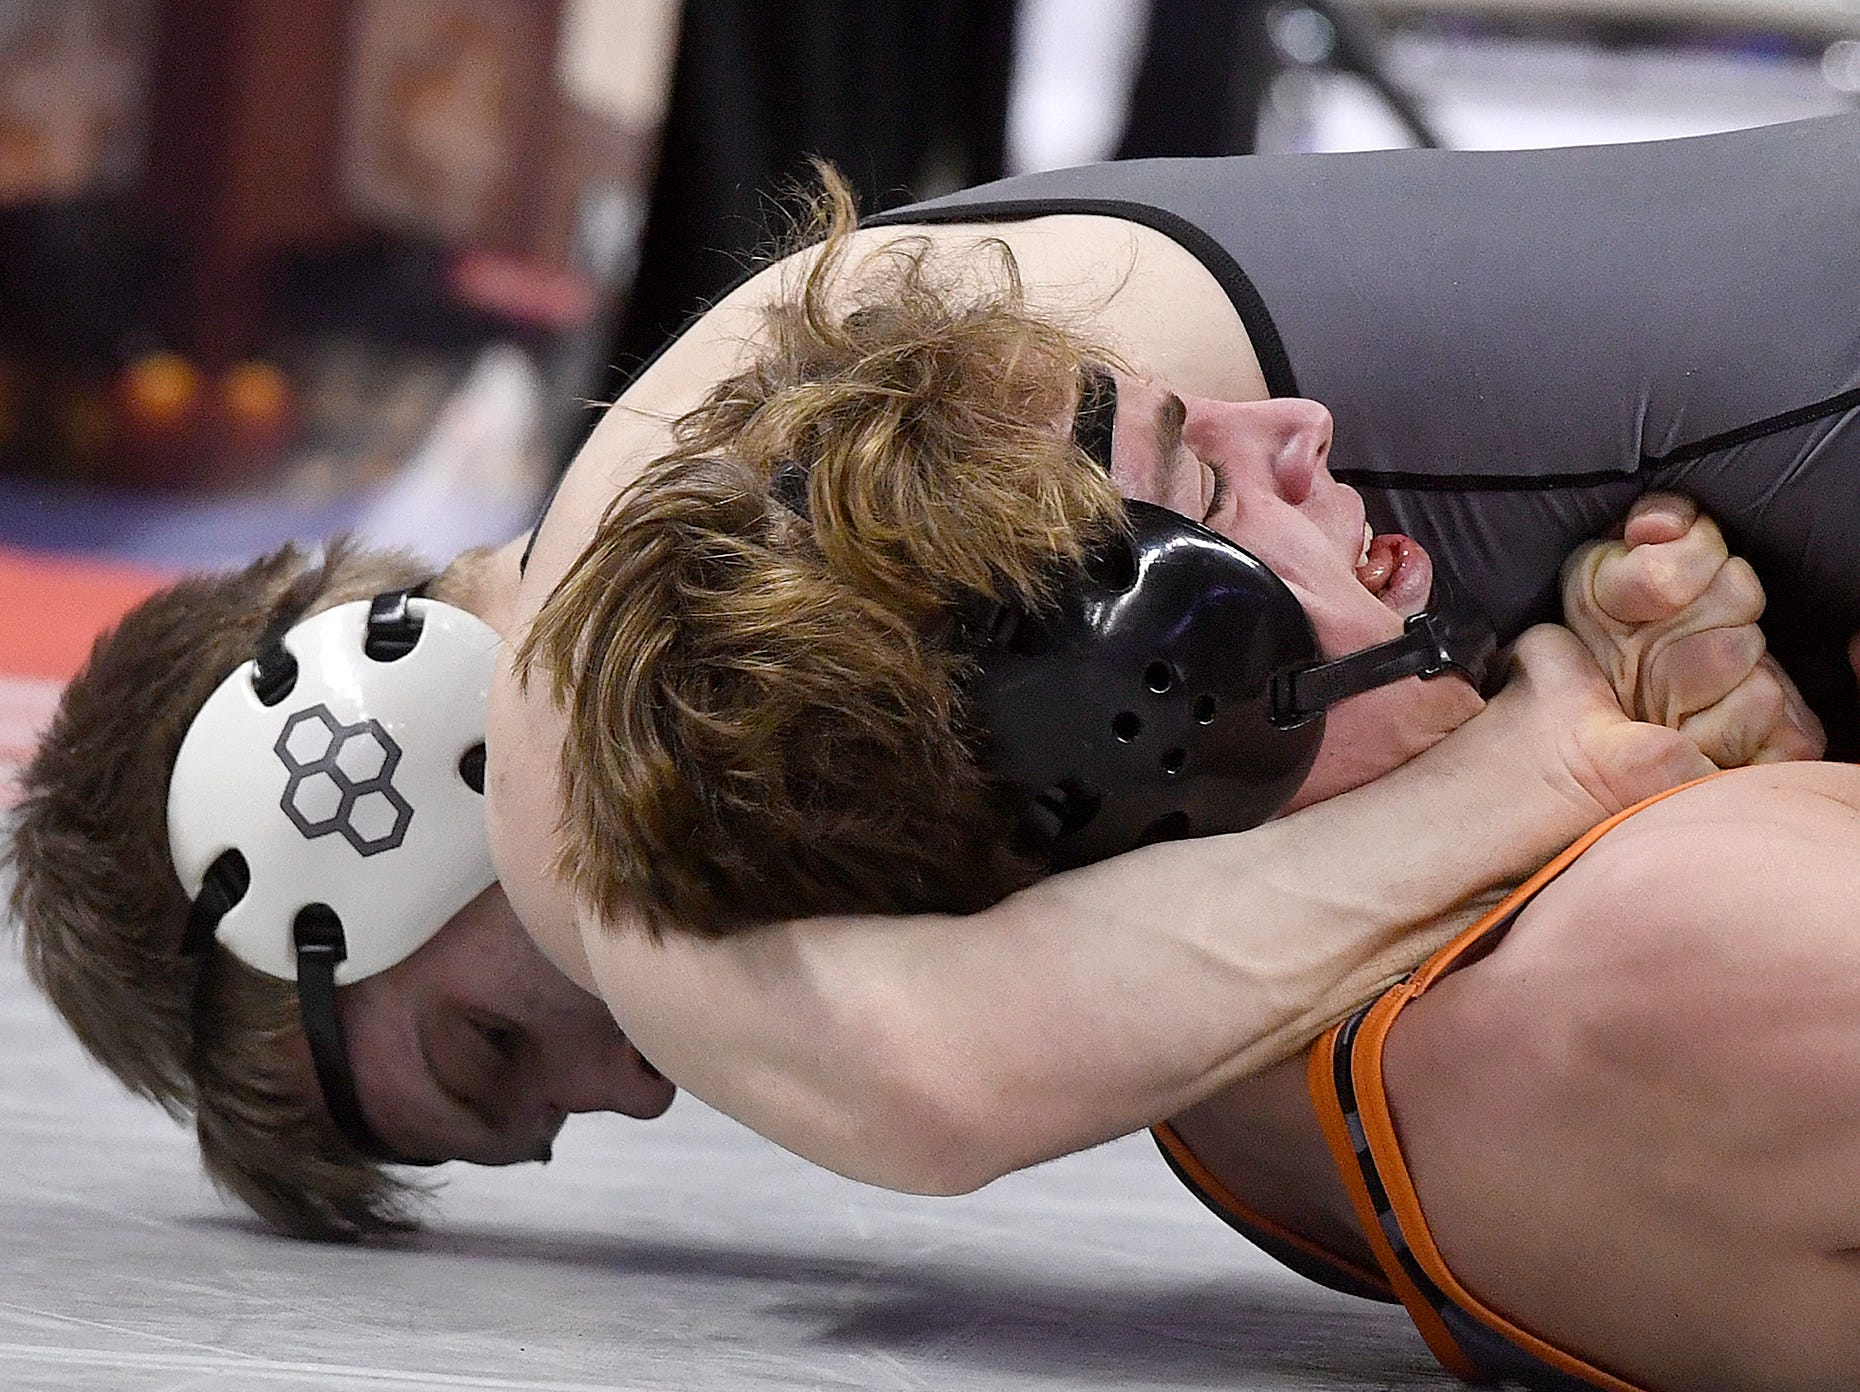 Tanner Schaller of Central York is pinned by Andrew DeBernardo of WC East during the PIAA Class 3-A 170 pound prelims, Thursday, March 7, 2019.John A. Pavoncello photo